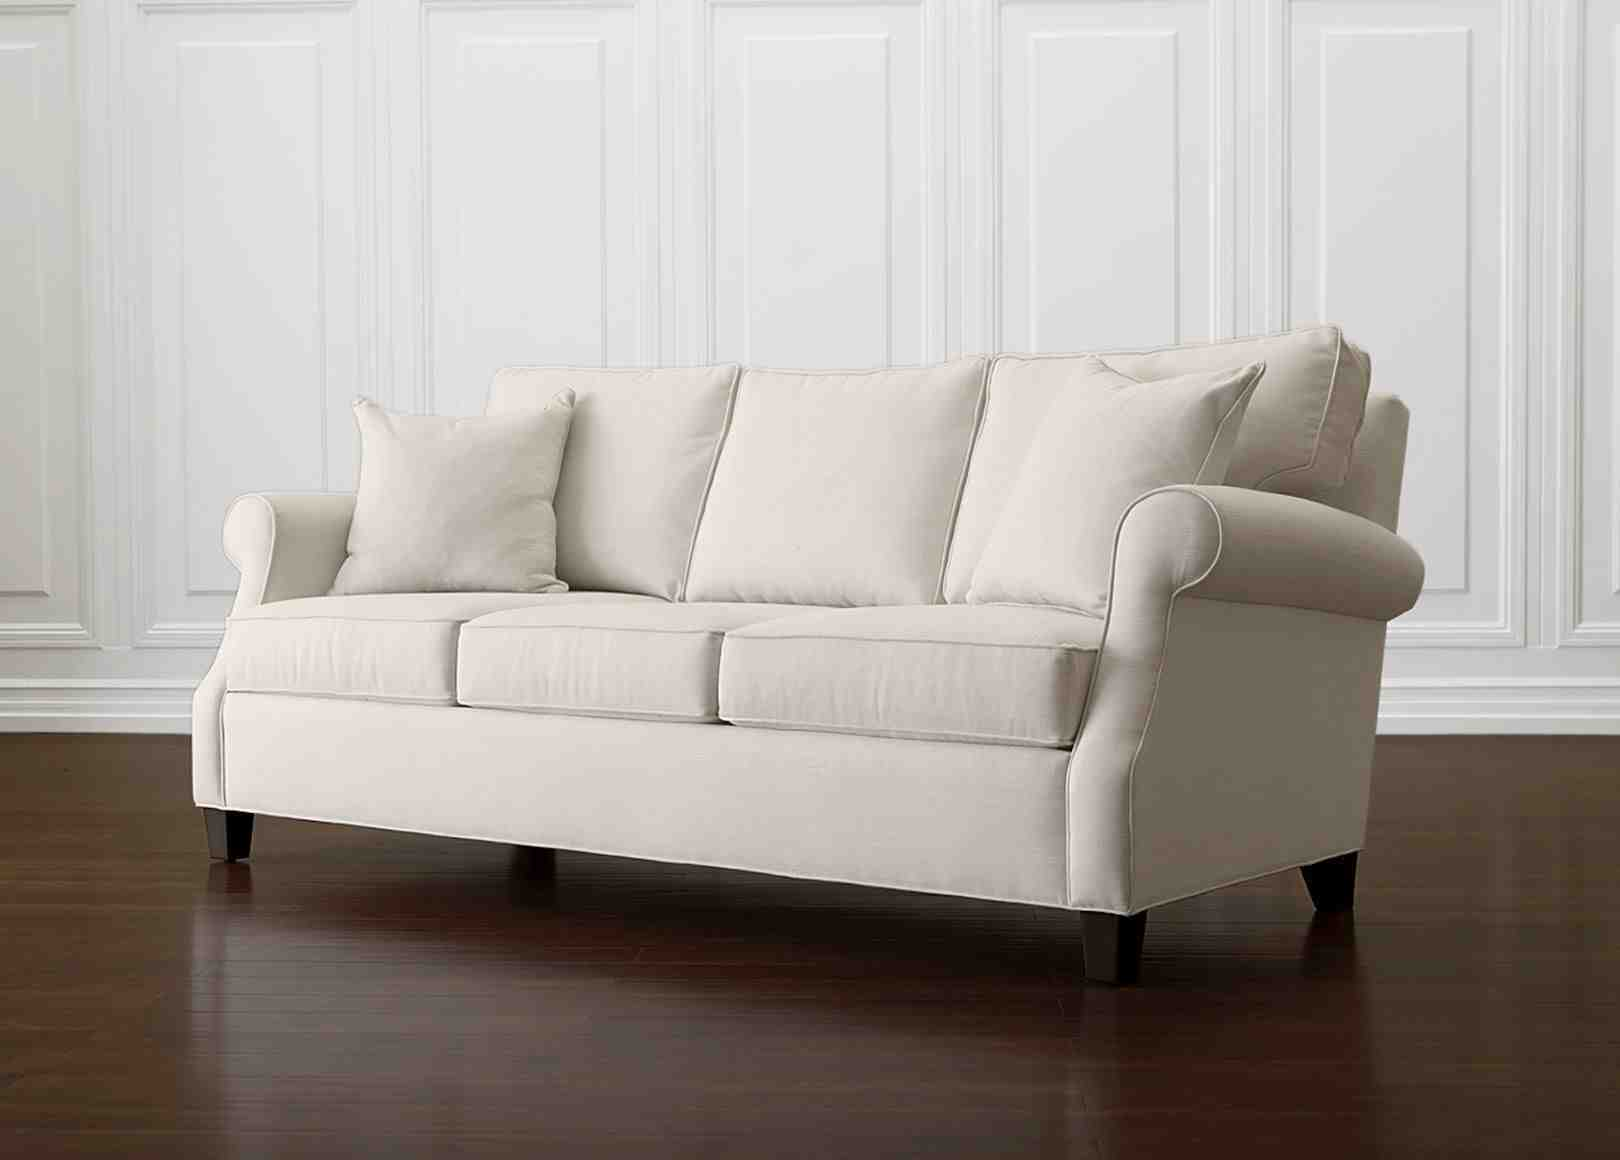 Ethan Allen Furniture ~ Ethan allen sofas on sale home furniture design